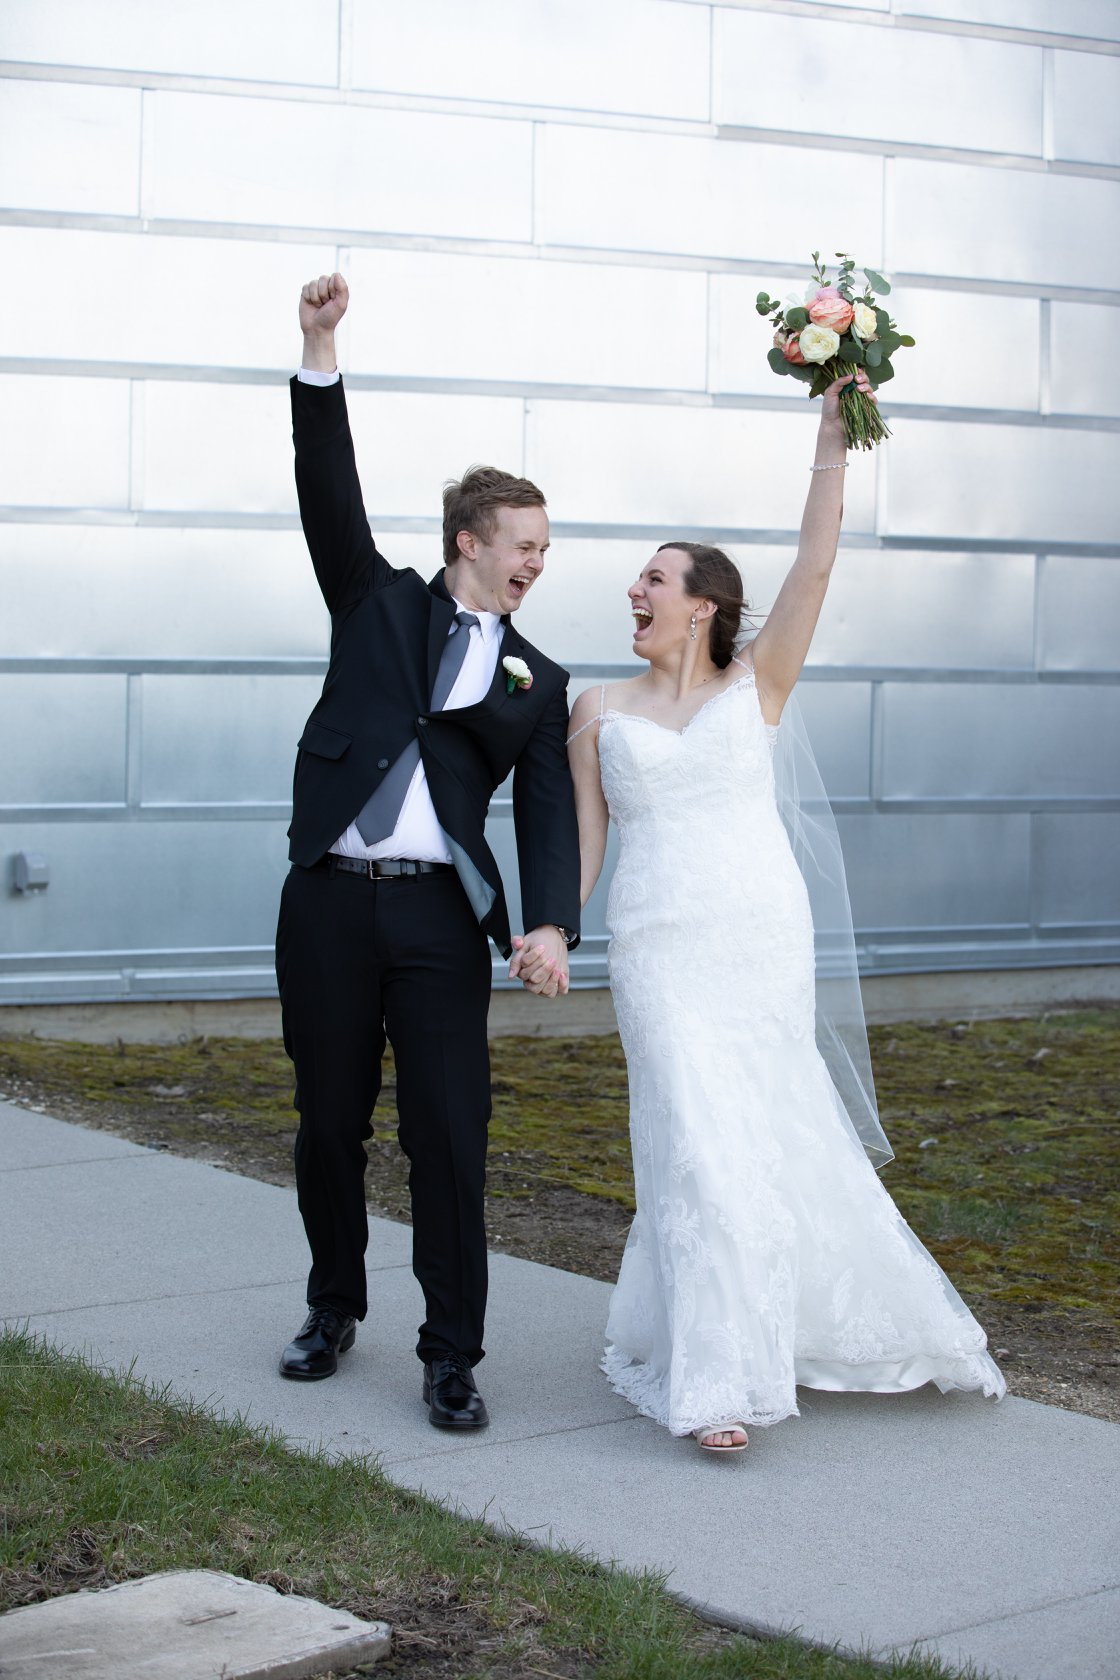 Marriage - Yes!